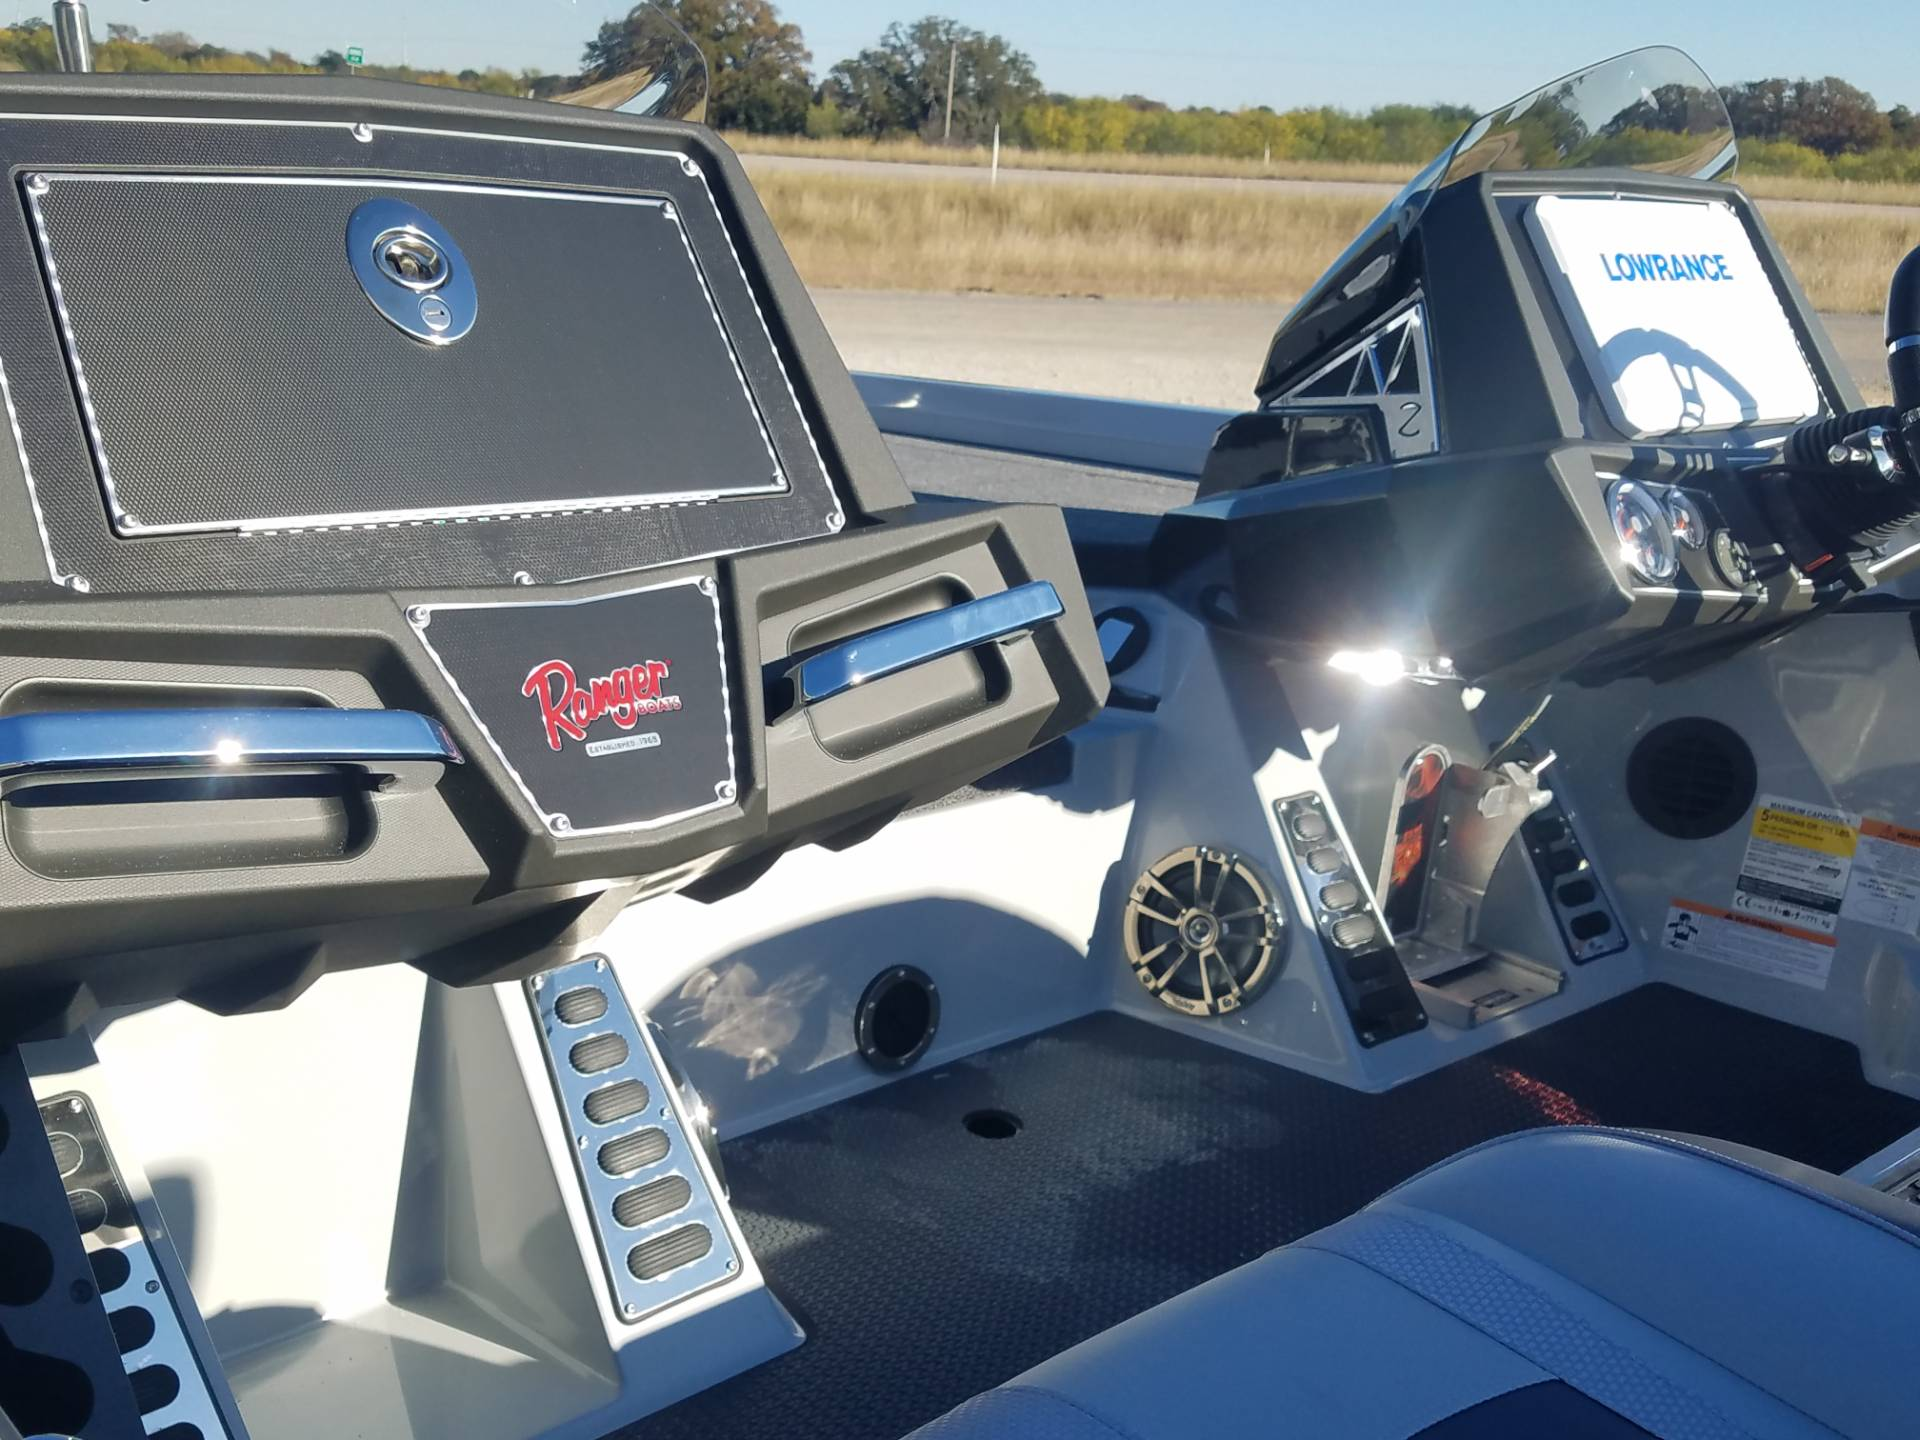 2021 Ranger Z521L Touring Package w/ Dual Pro Charger in Eastland, Texas - Photo 11